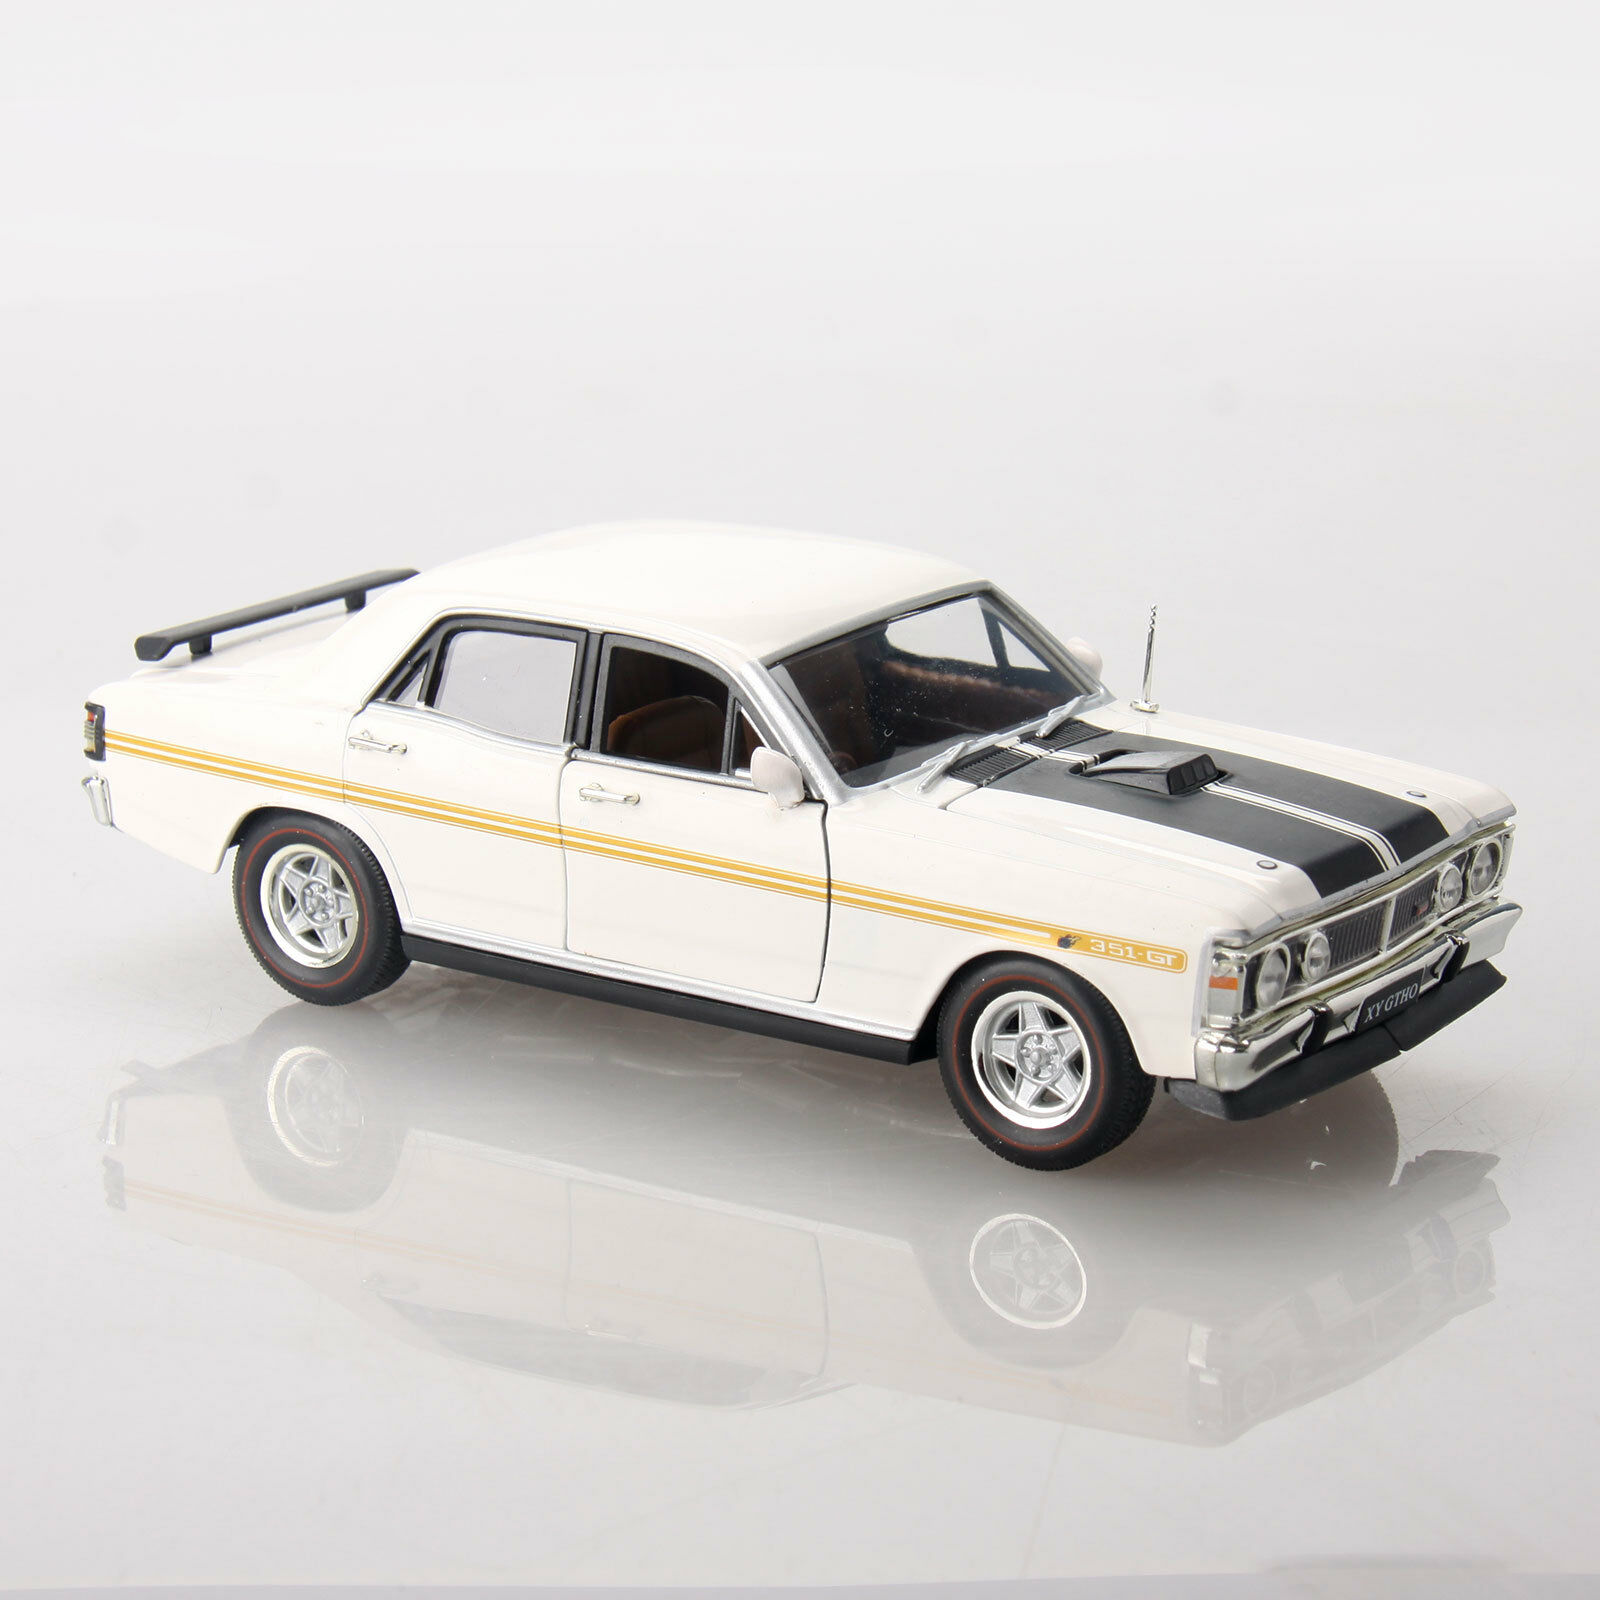 Ford Falcon XY GT HO Phase III 351 1 32 Scale Aussie Classic Diecast Car White